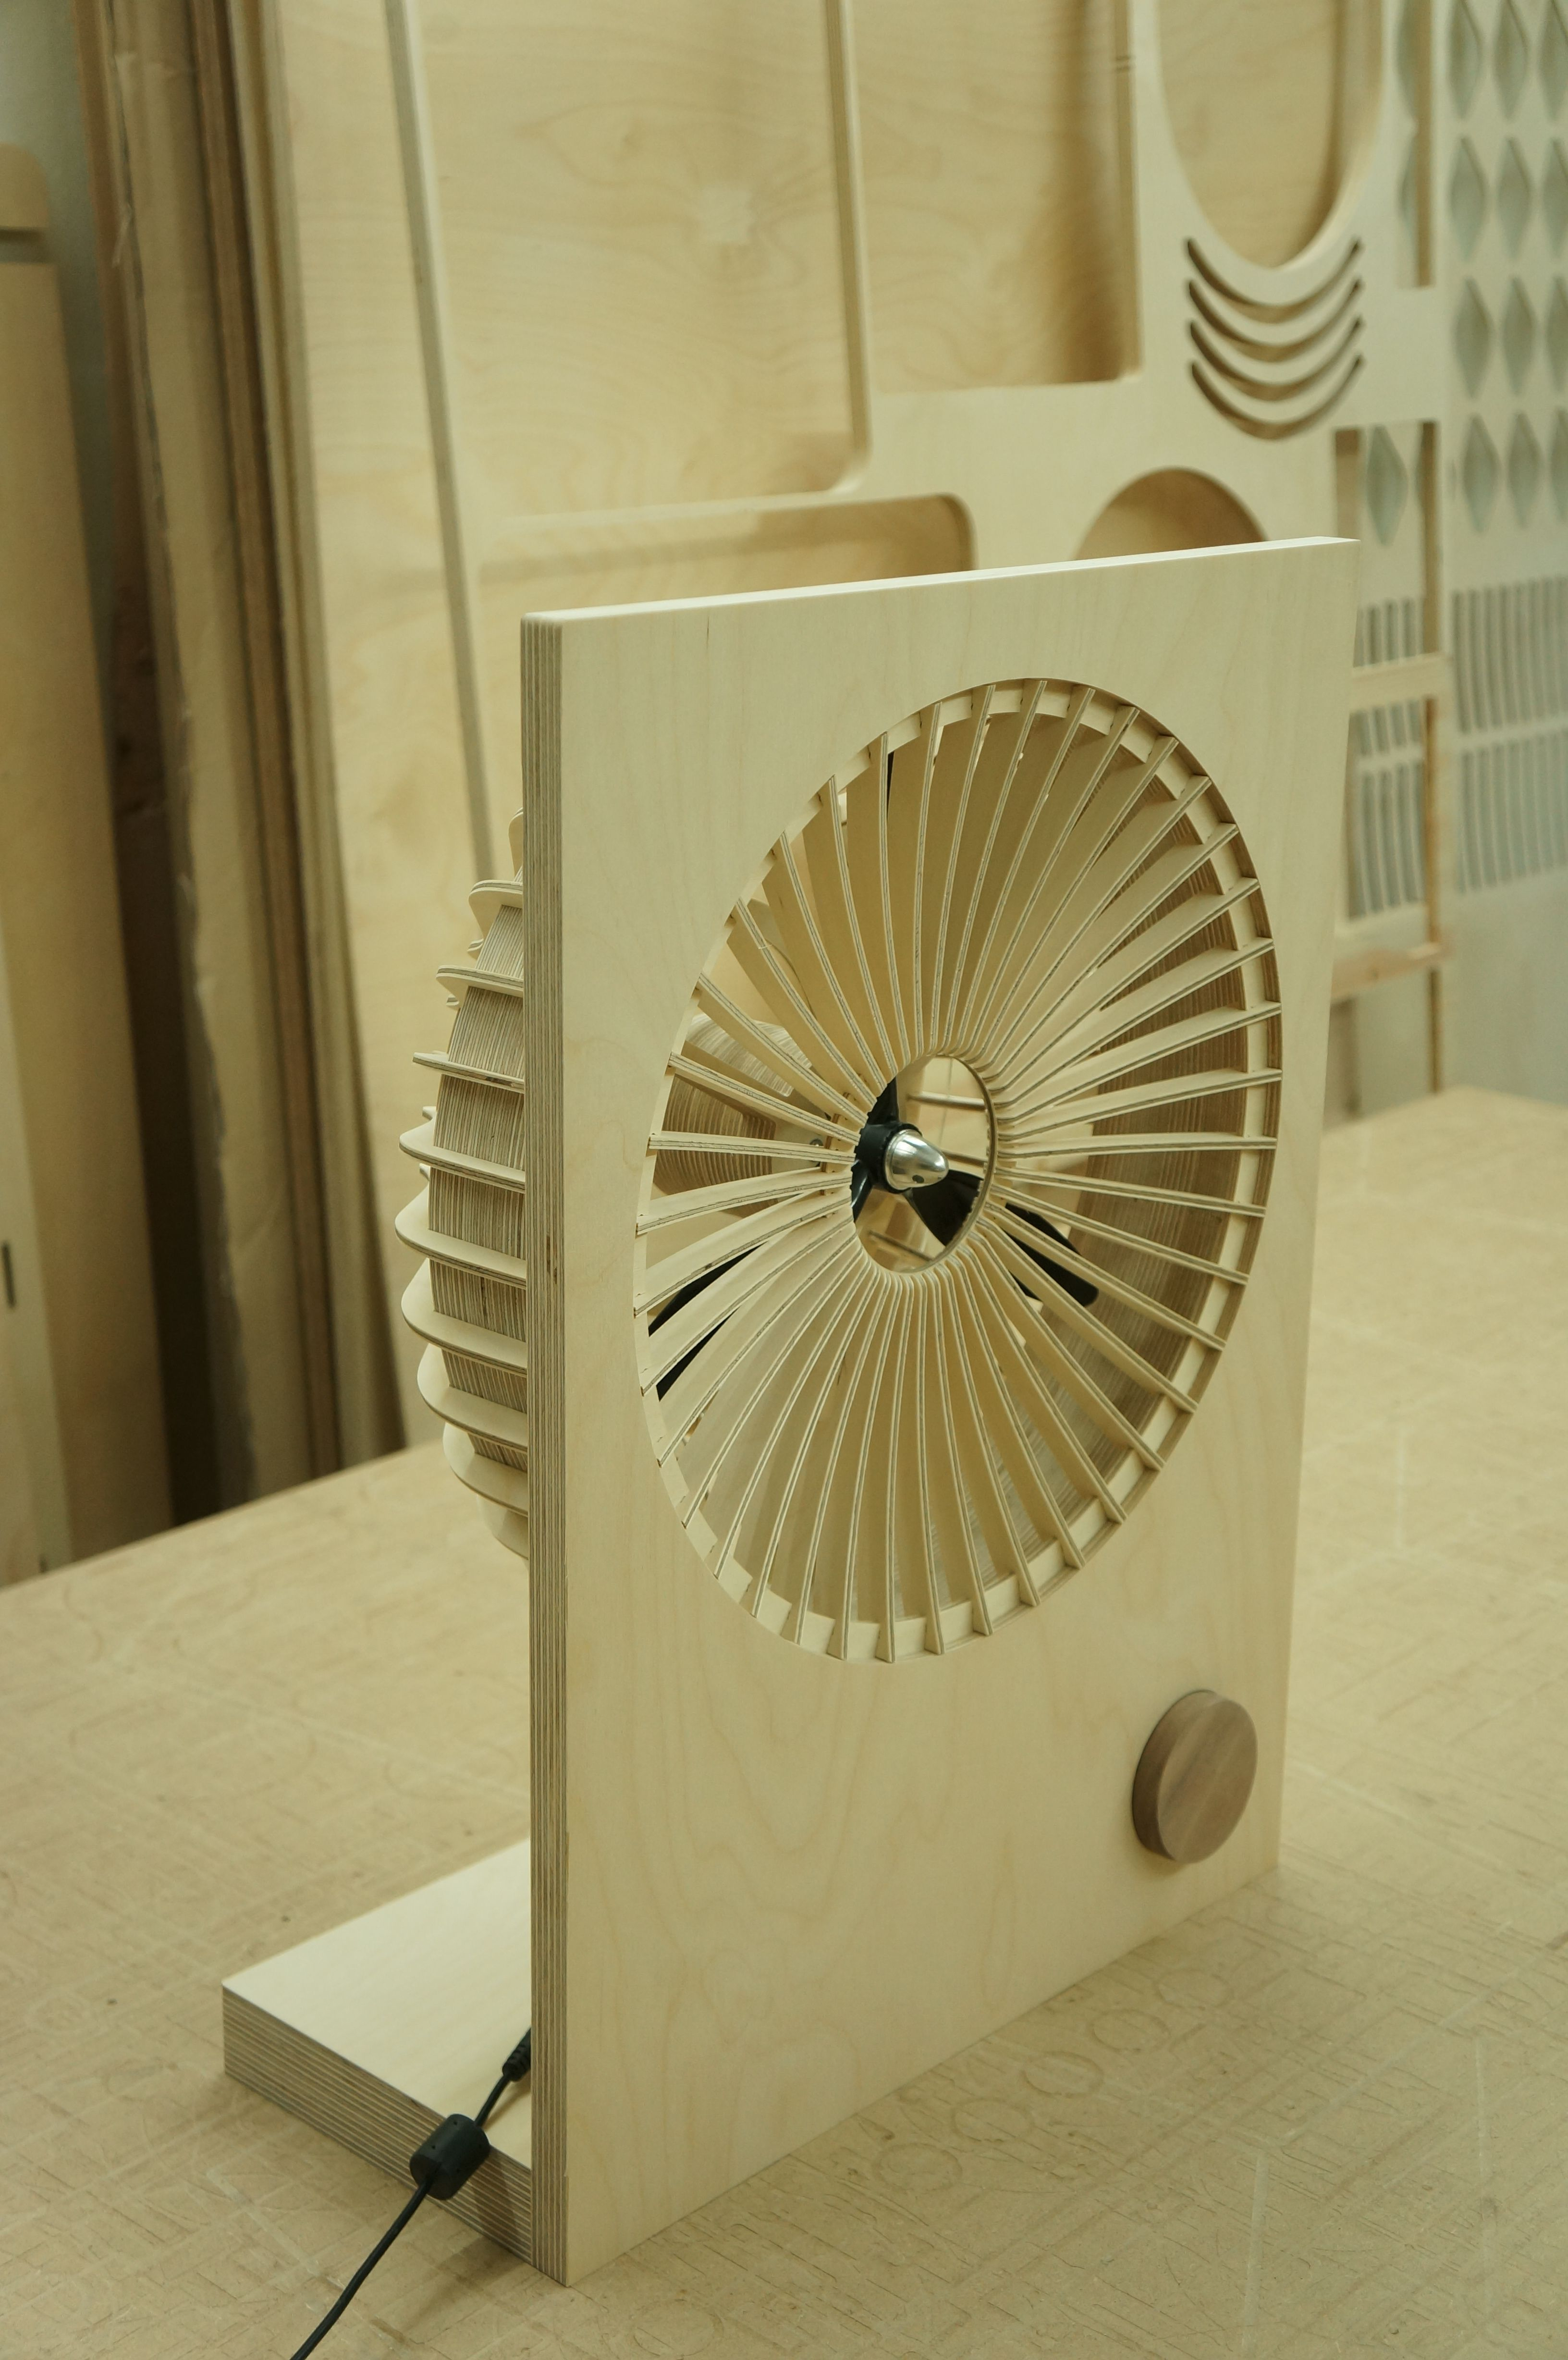 Wooden Electric Fan 4 2 Wood Fan Hot Rods Fan Design Furniture